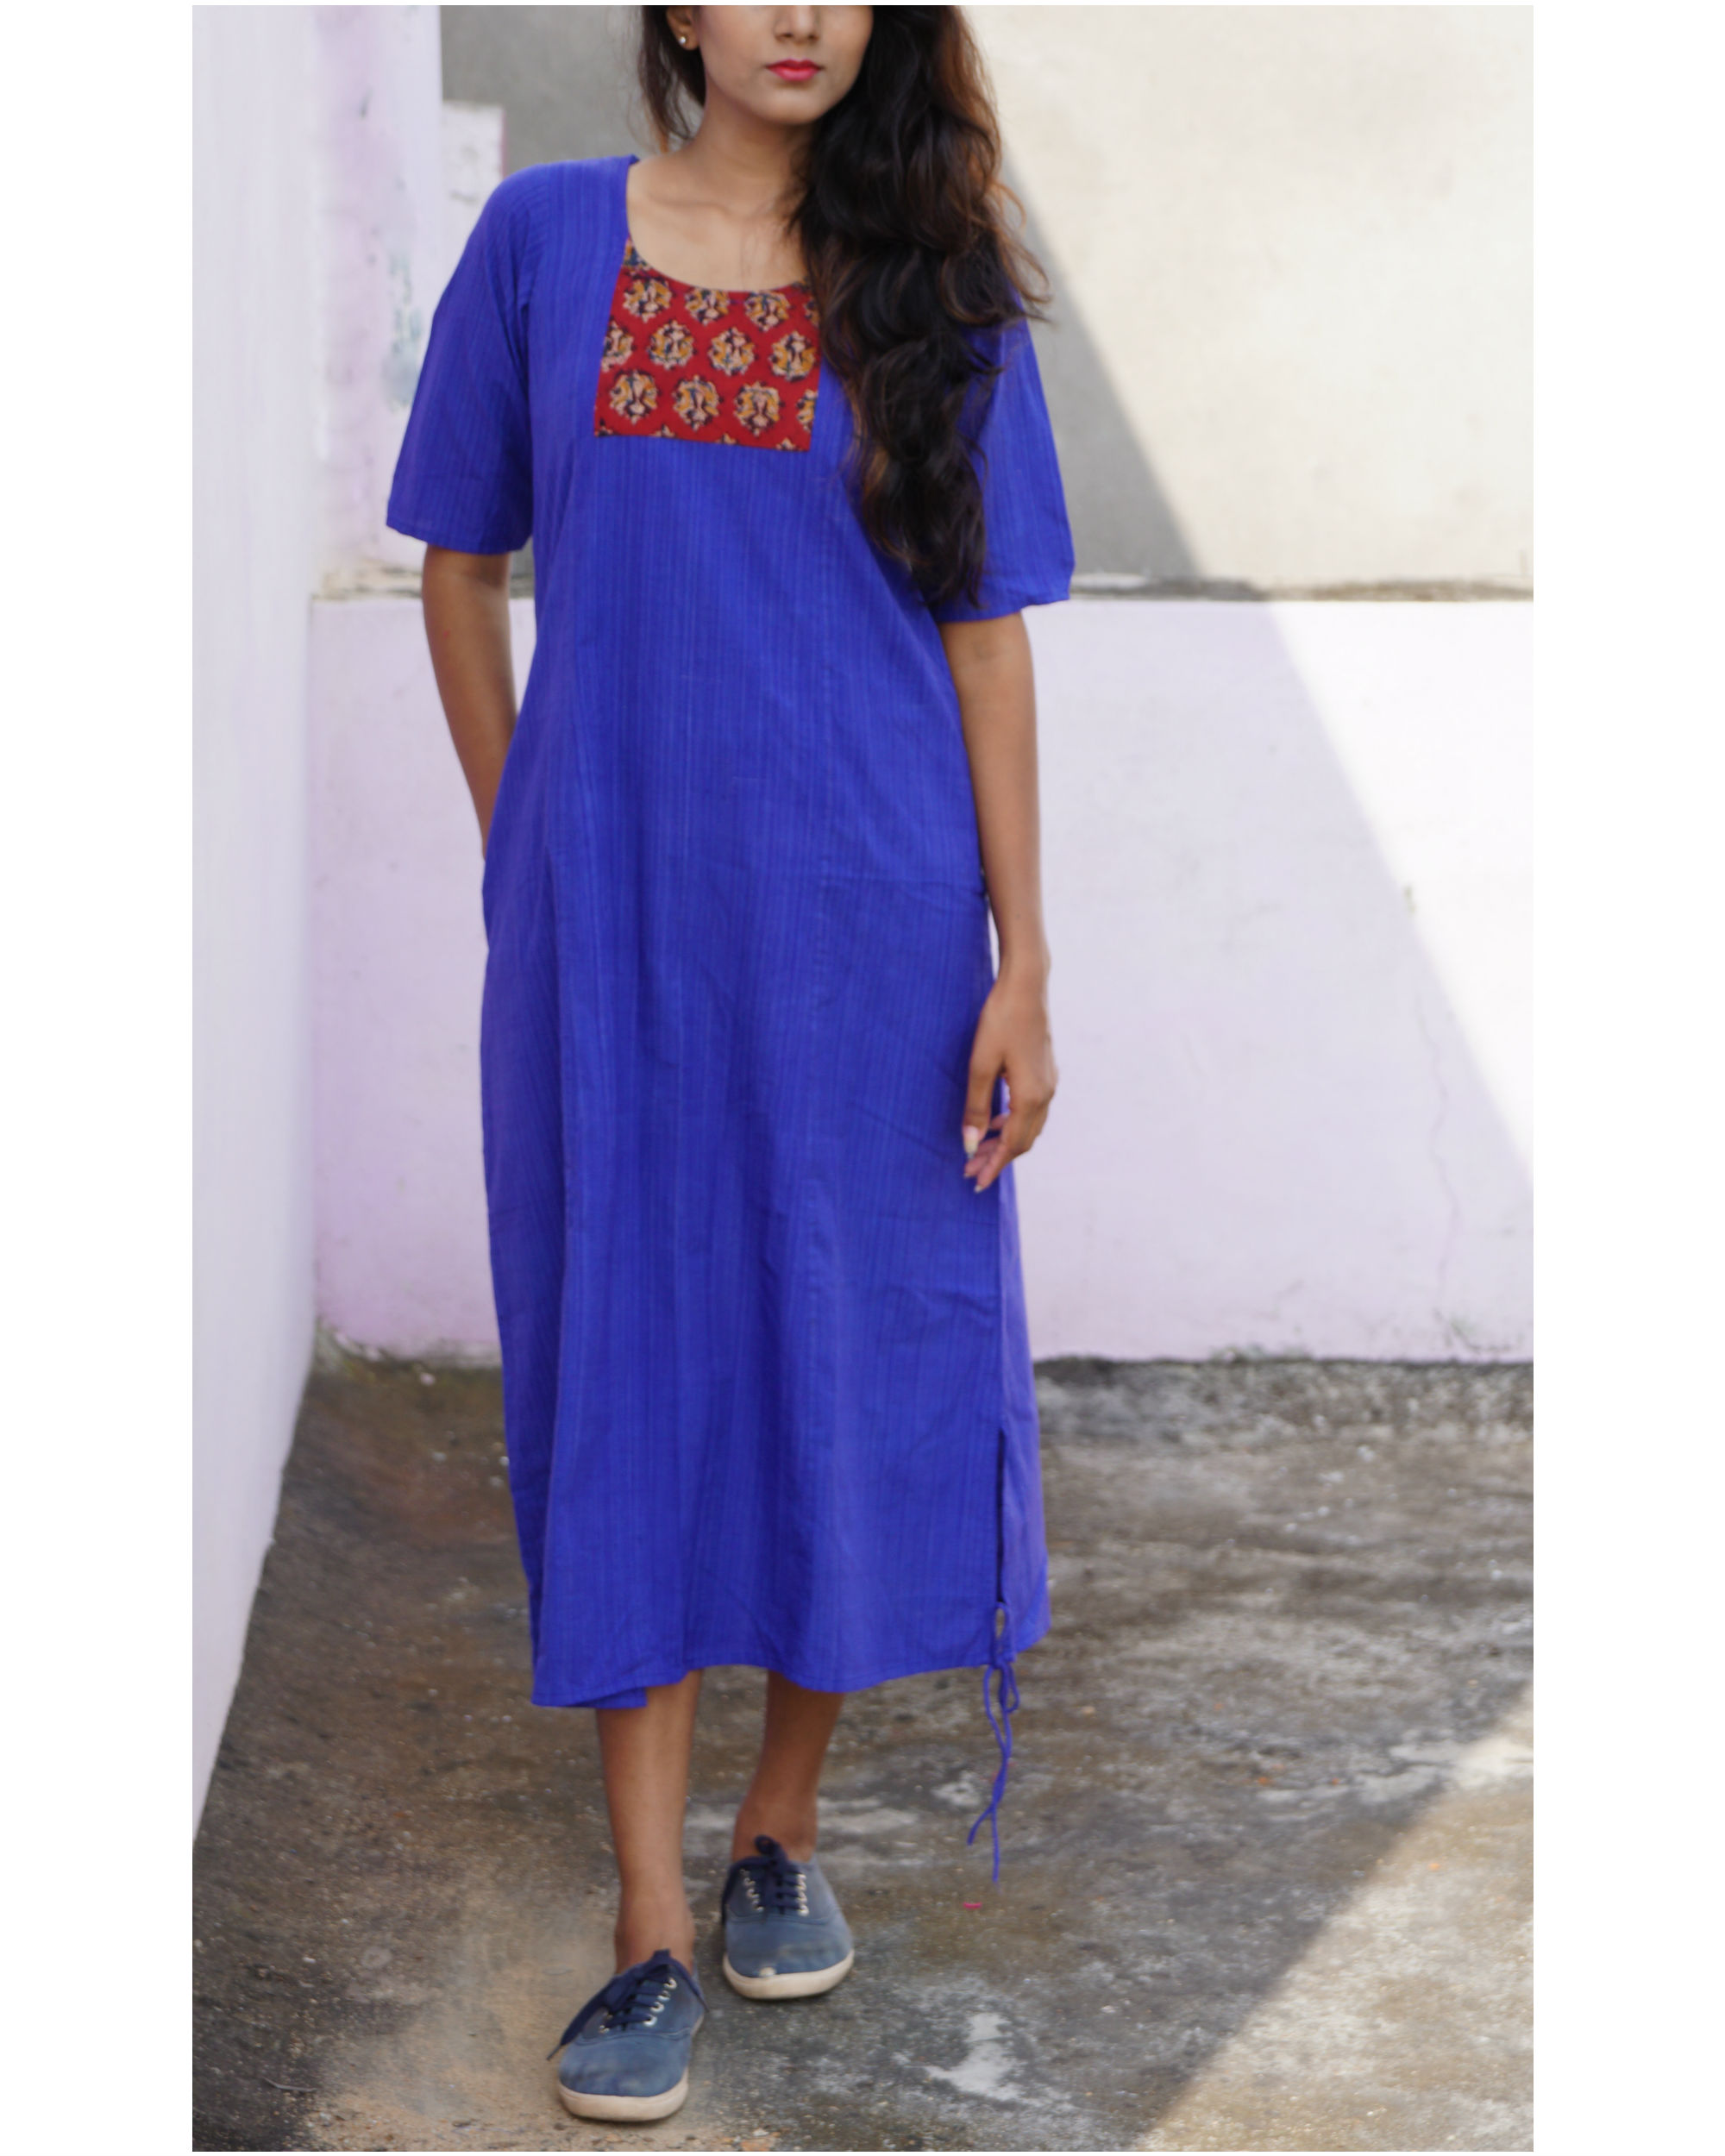 Blue tara slit dress